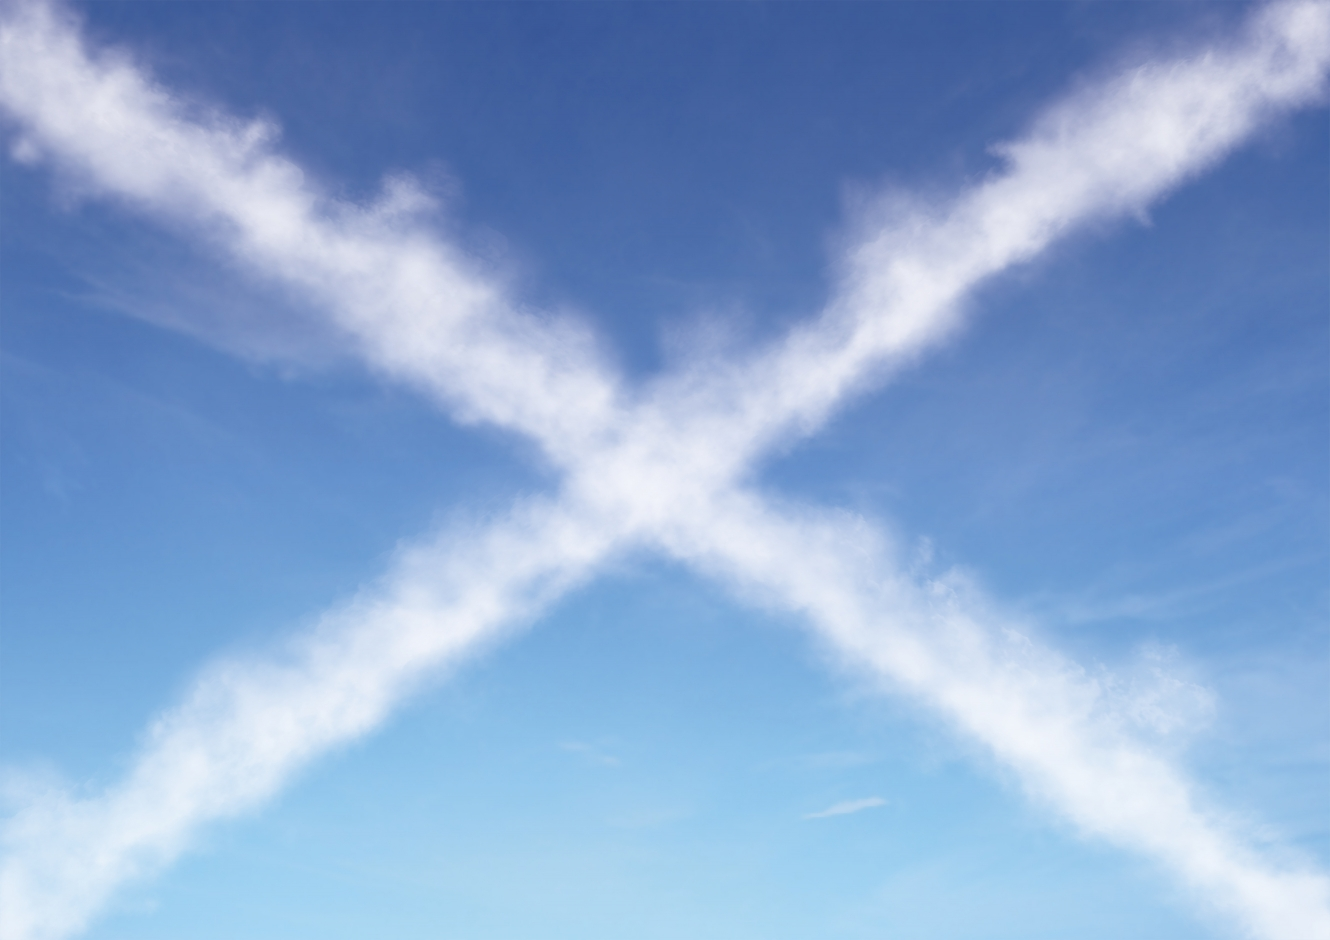 Design Antics The Guardian: Scotland Rebrand Sky Cross